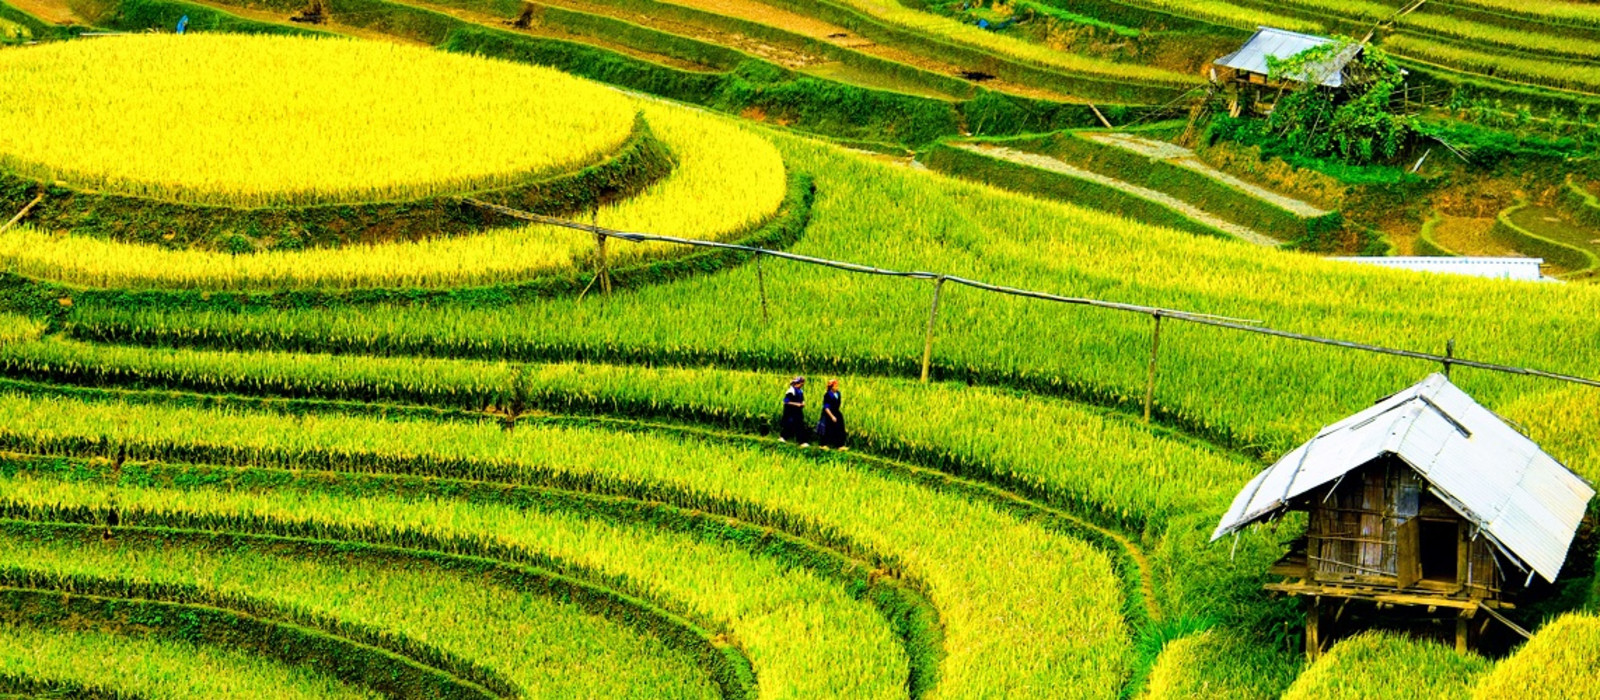 Best time to visit Vietnam - rice fields in Mai chau